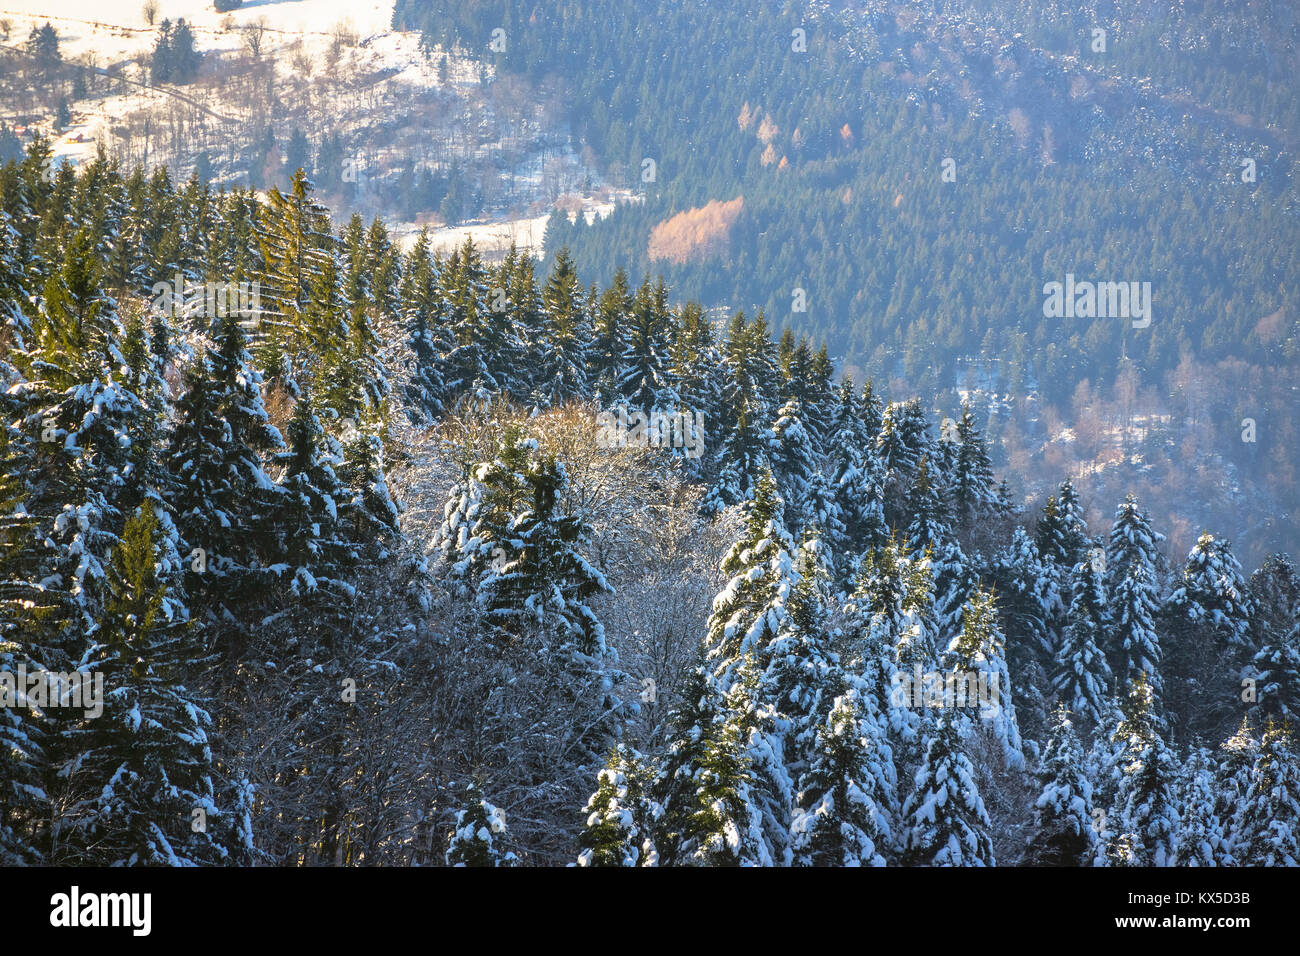 Winter landscape with a snowy firs forest, Vosges, France. - Stock Image